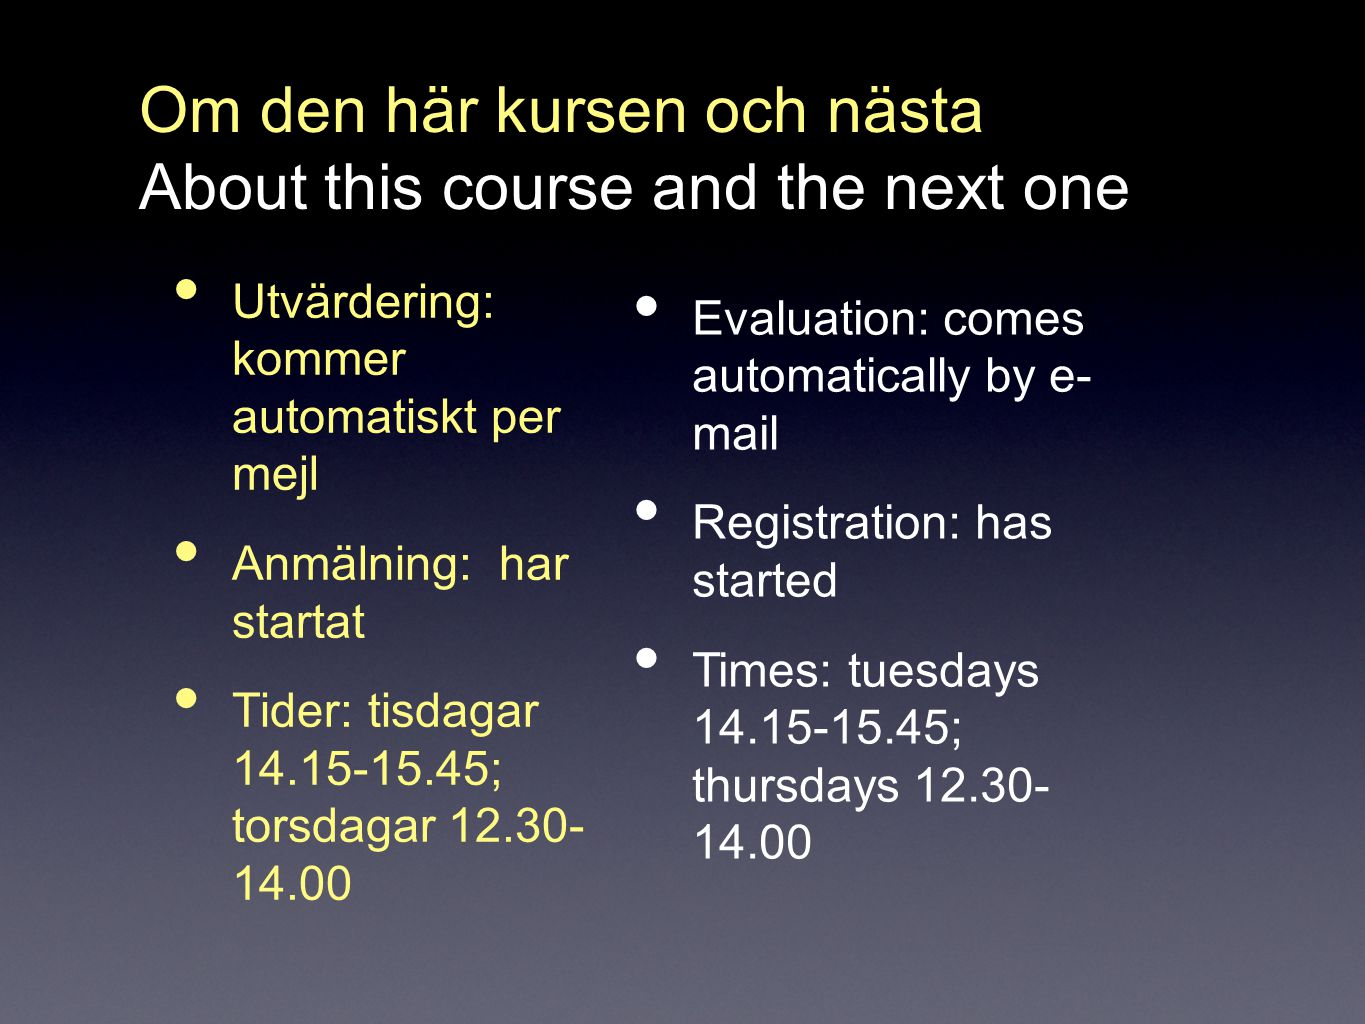 Om den här kursen och nästa About this course and the next one